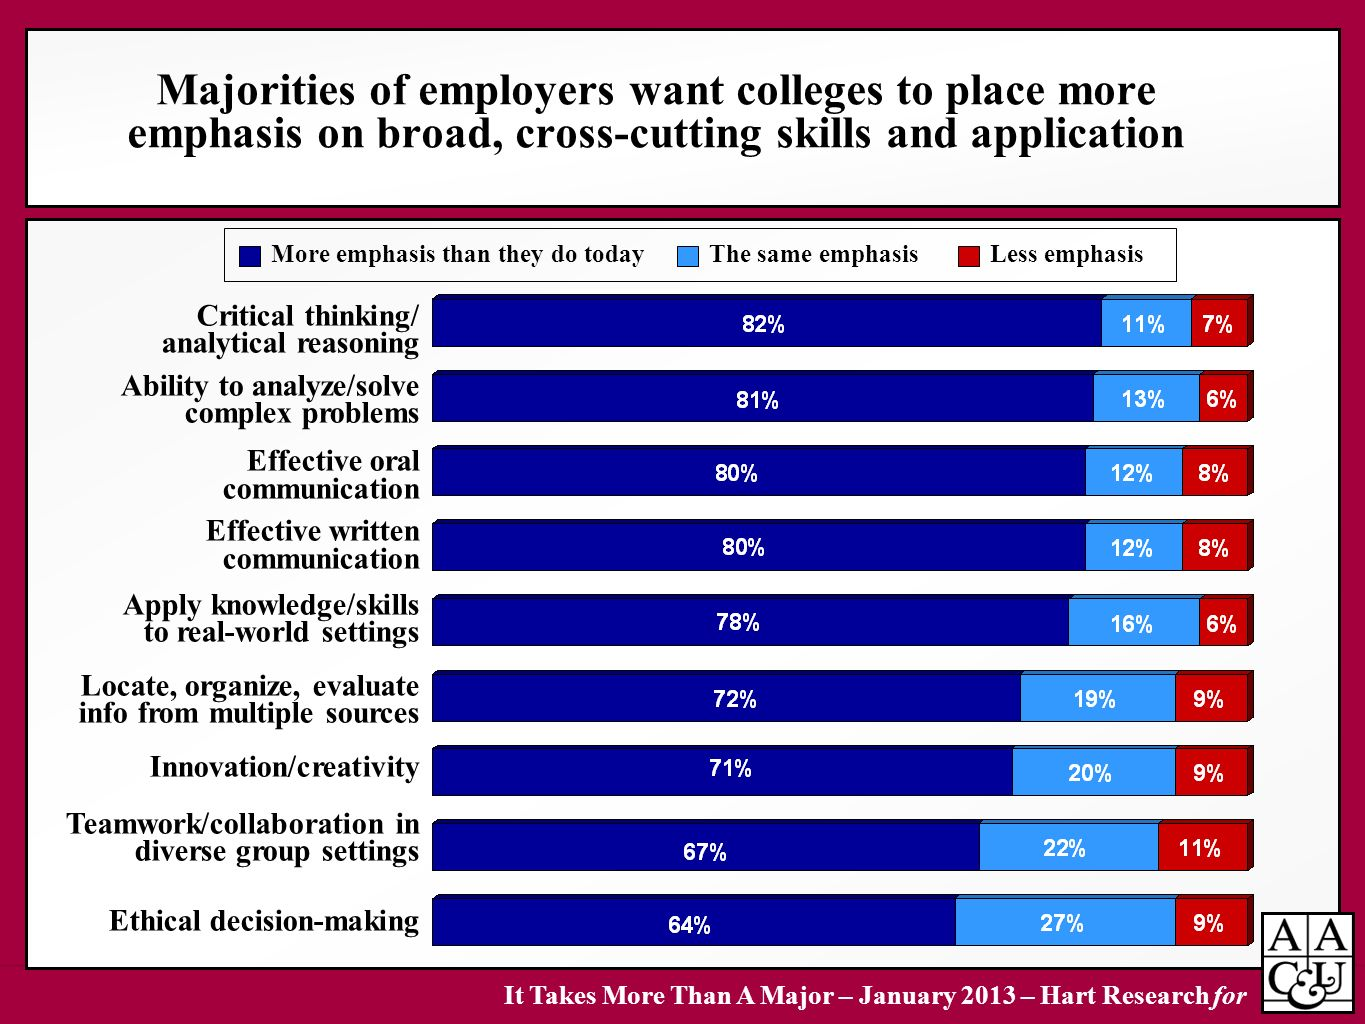 Majorities of employers want colleges to place more emphasis on broad, cross-cutting skills and application